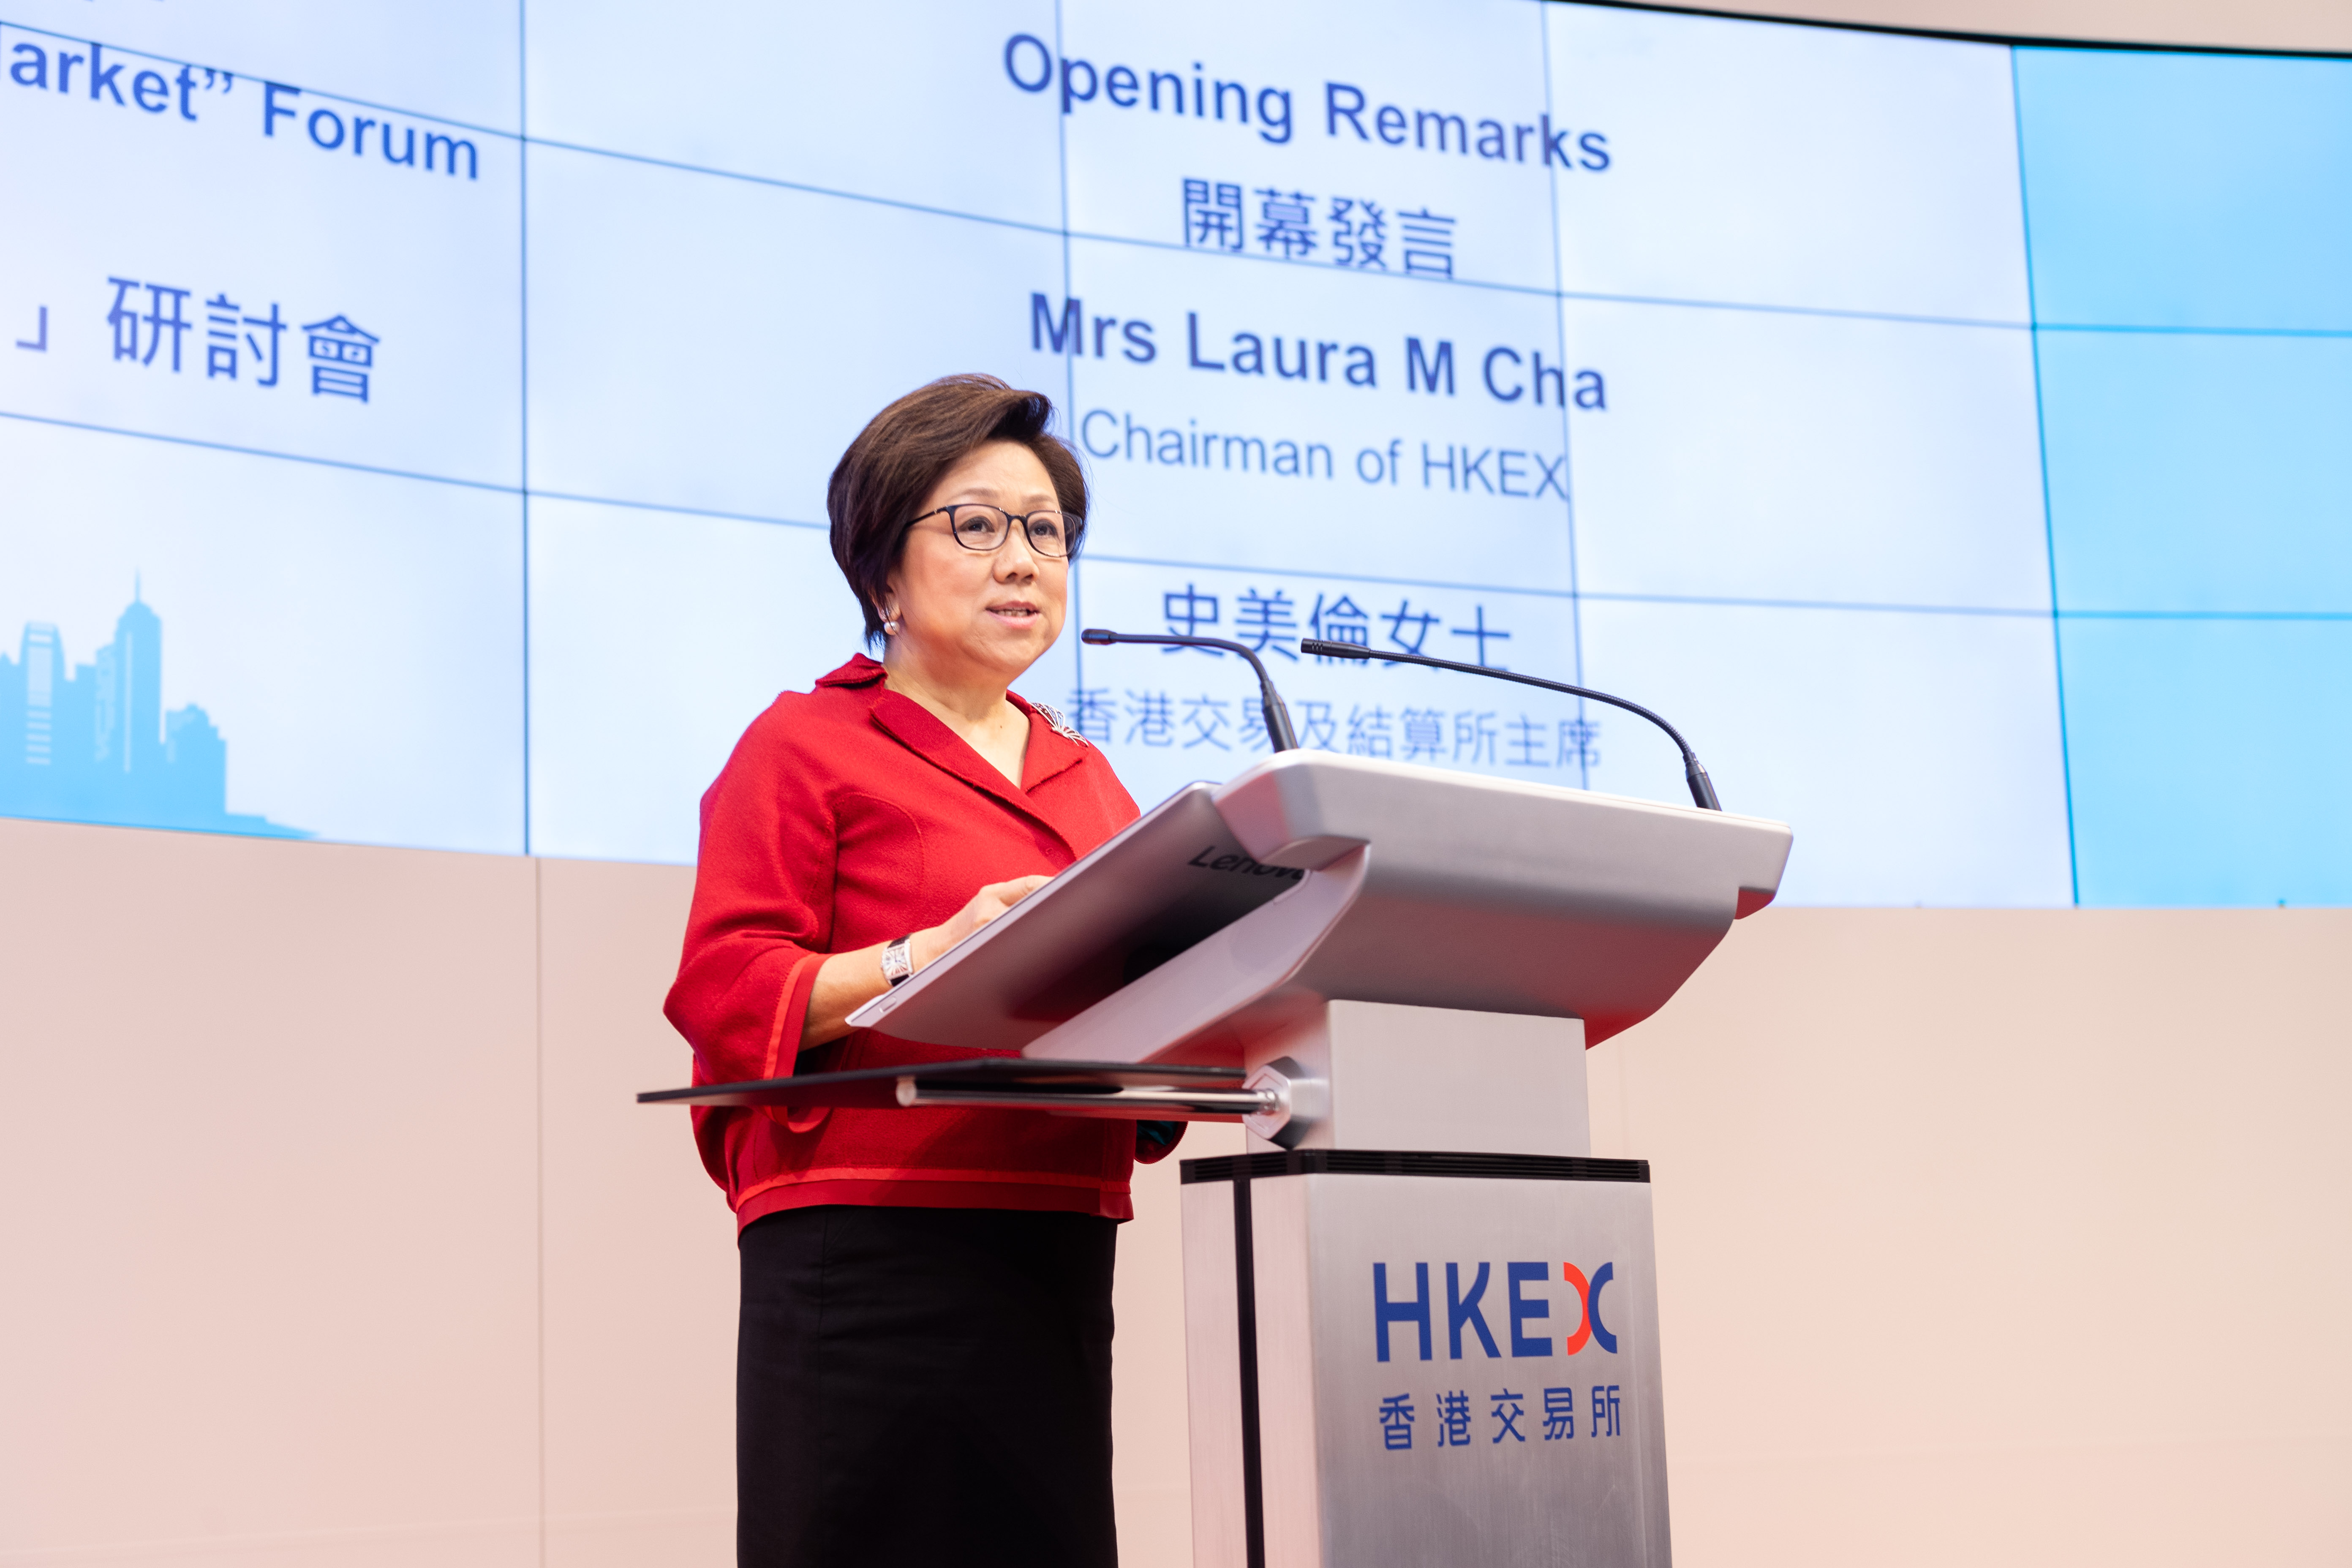 HKEX Chairman Laura M Cha delivering opening remarks at the forum.